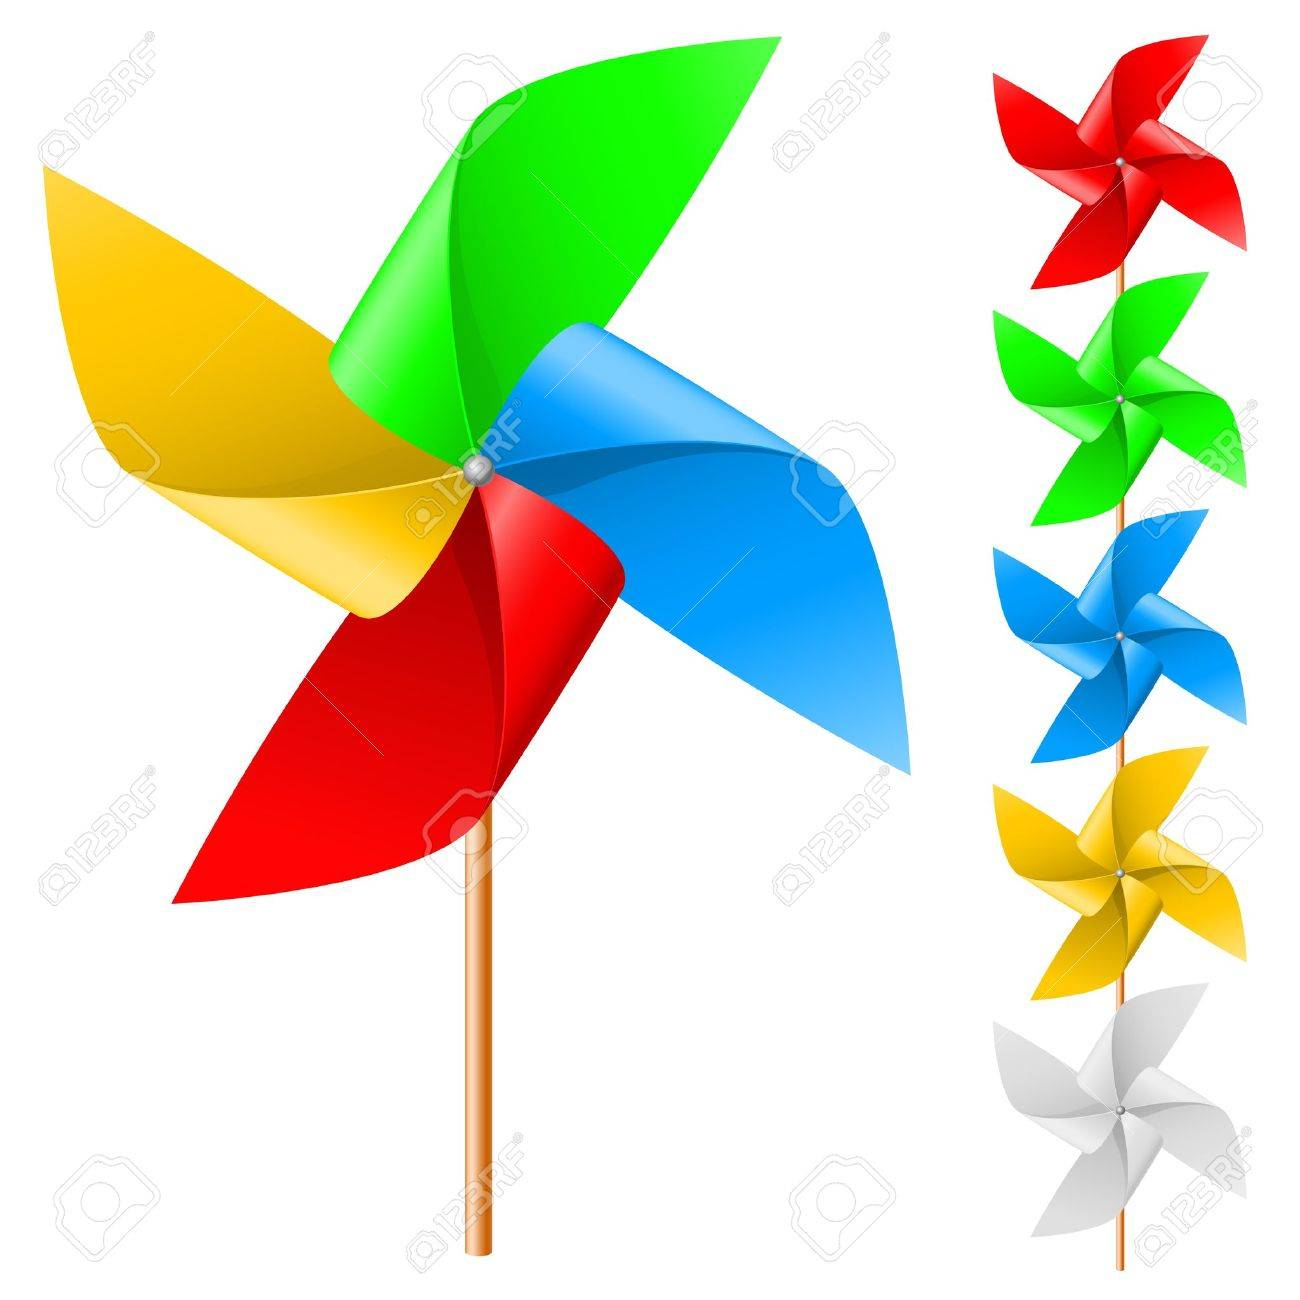 Toy Windmill Propeller Set With Multicolored Blades On A White Stock Vector